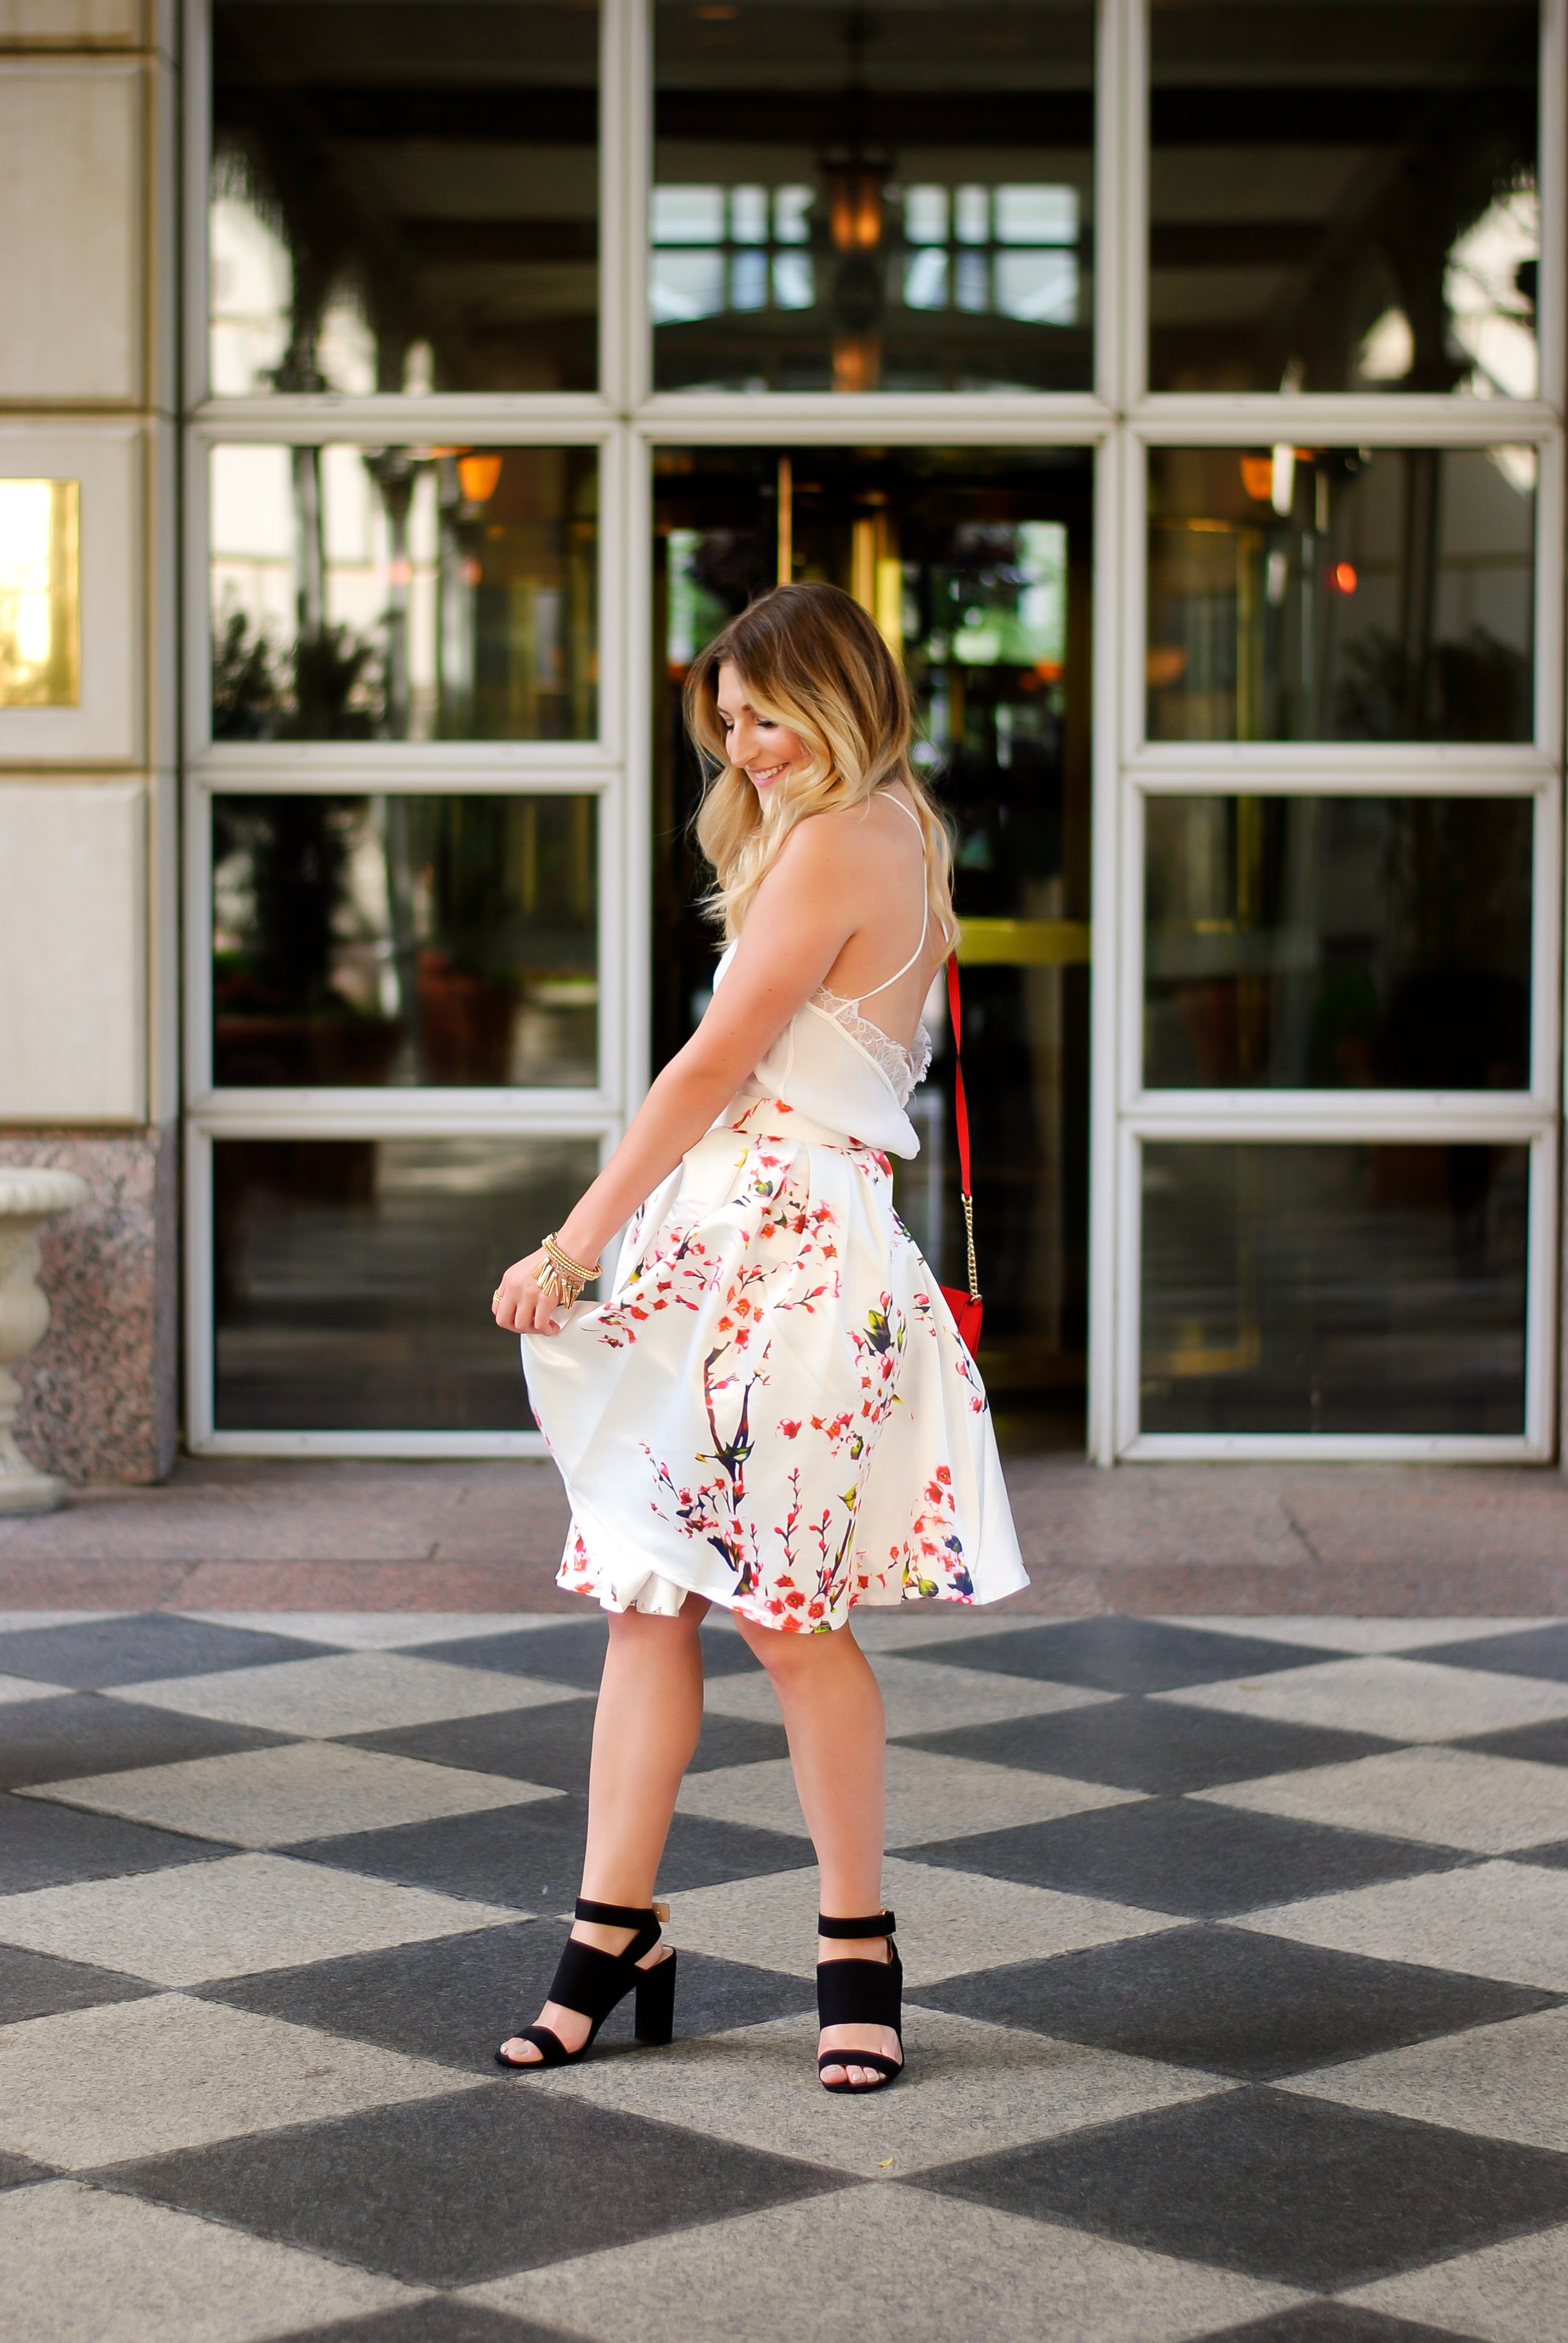 Feminine floral skirt and glamorous outfit | Audrey Madison Stowe Blog